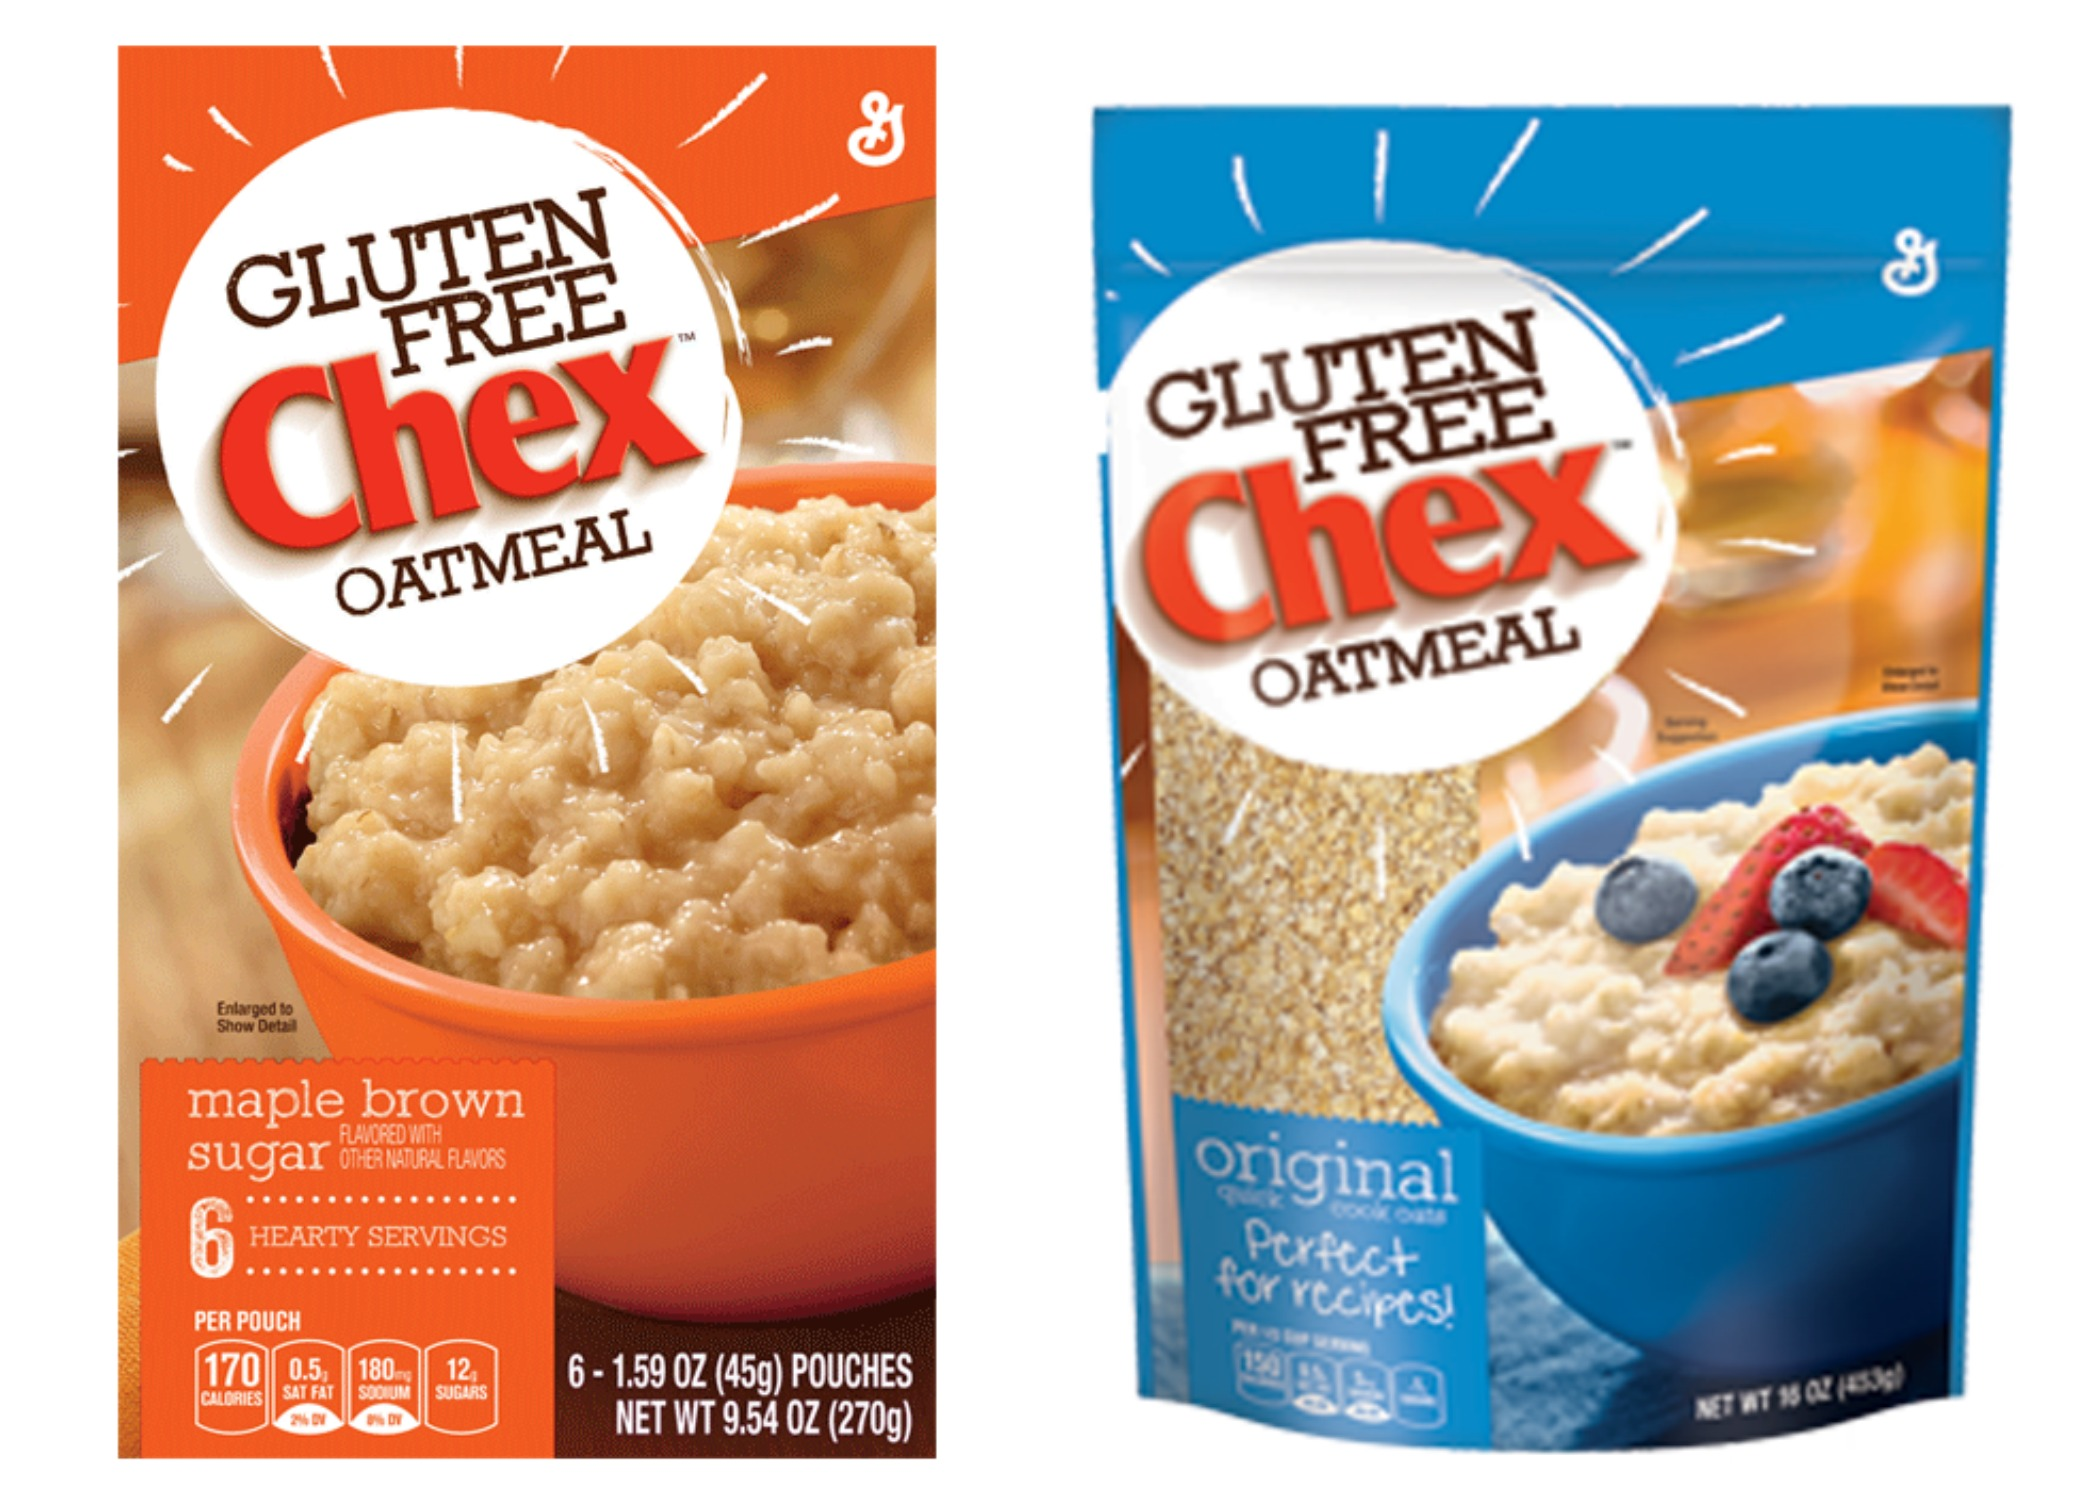 Are oatmeal gluten free